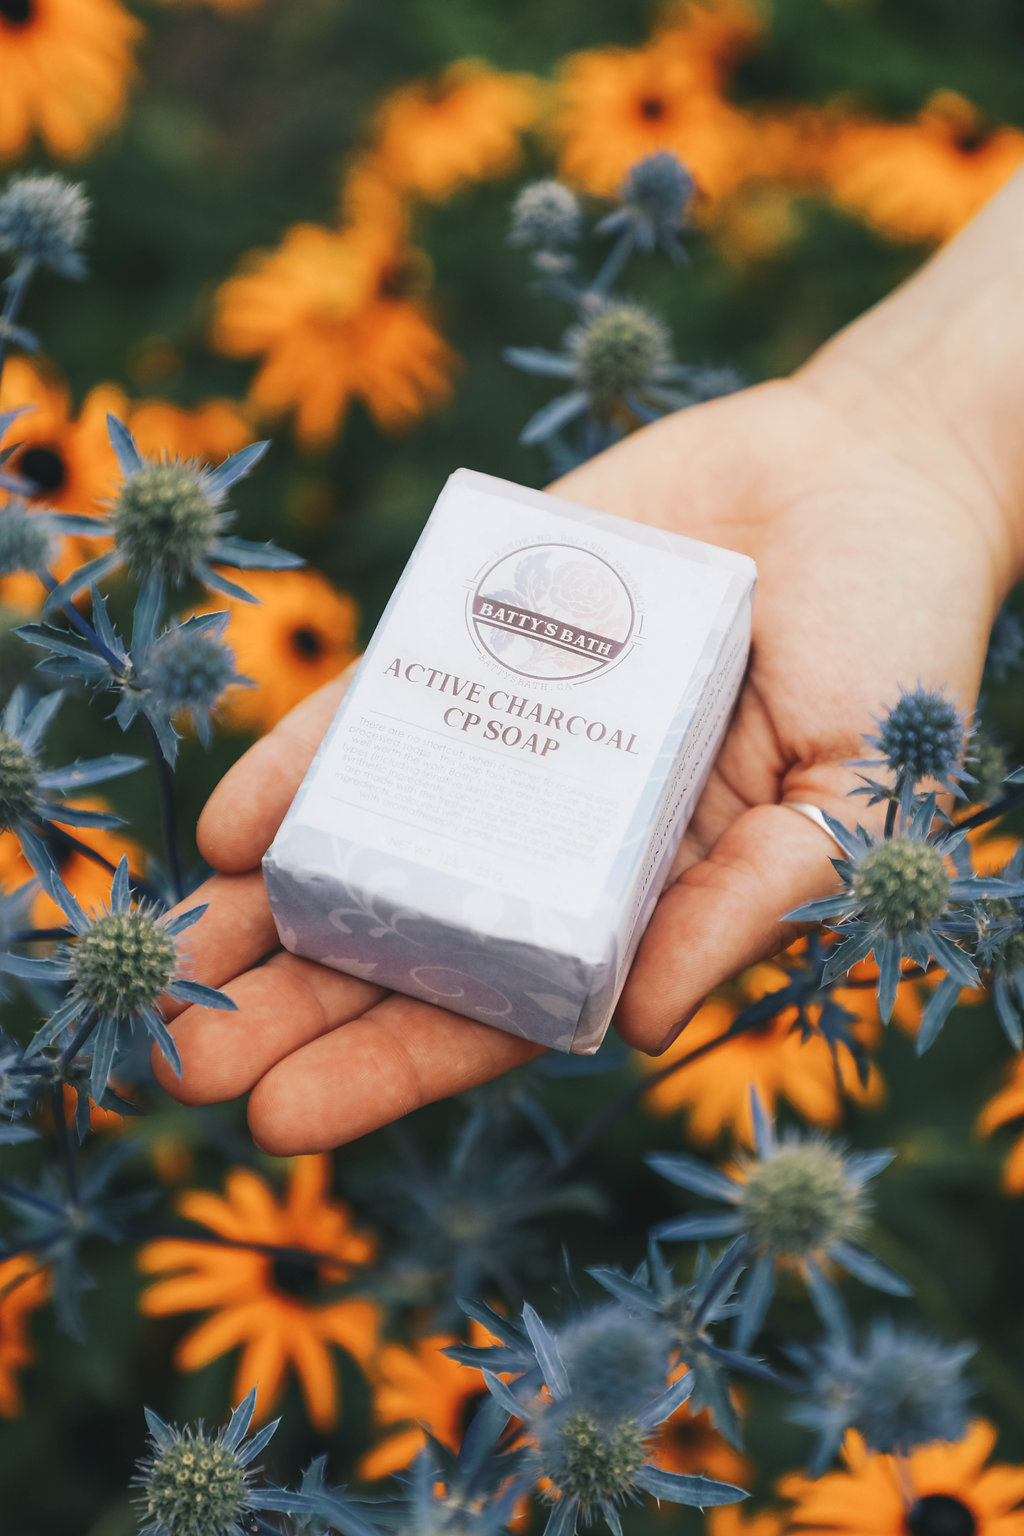 Handmade Natural Activated Charcoal Soap - Made in Canada